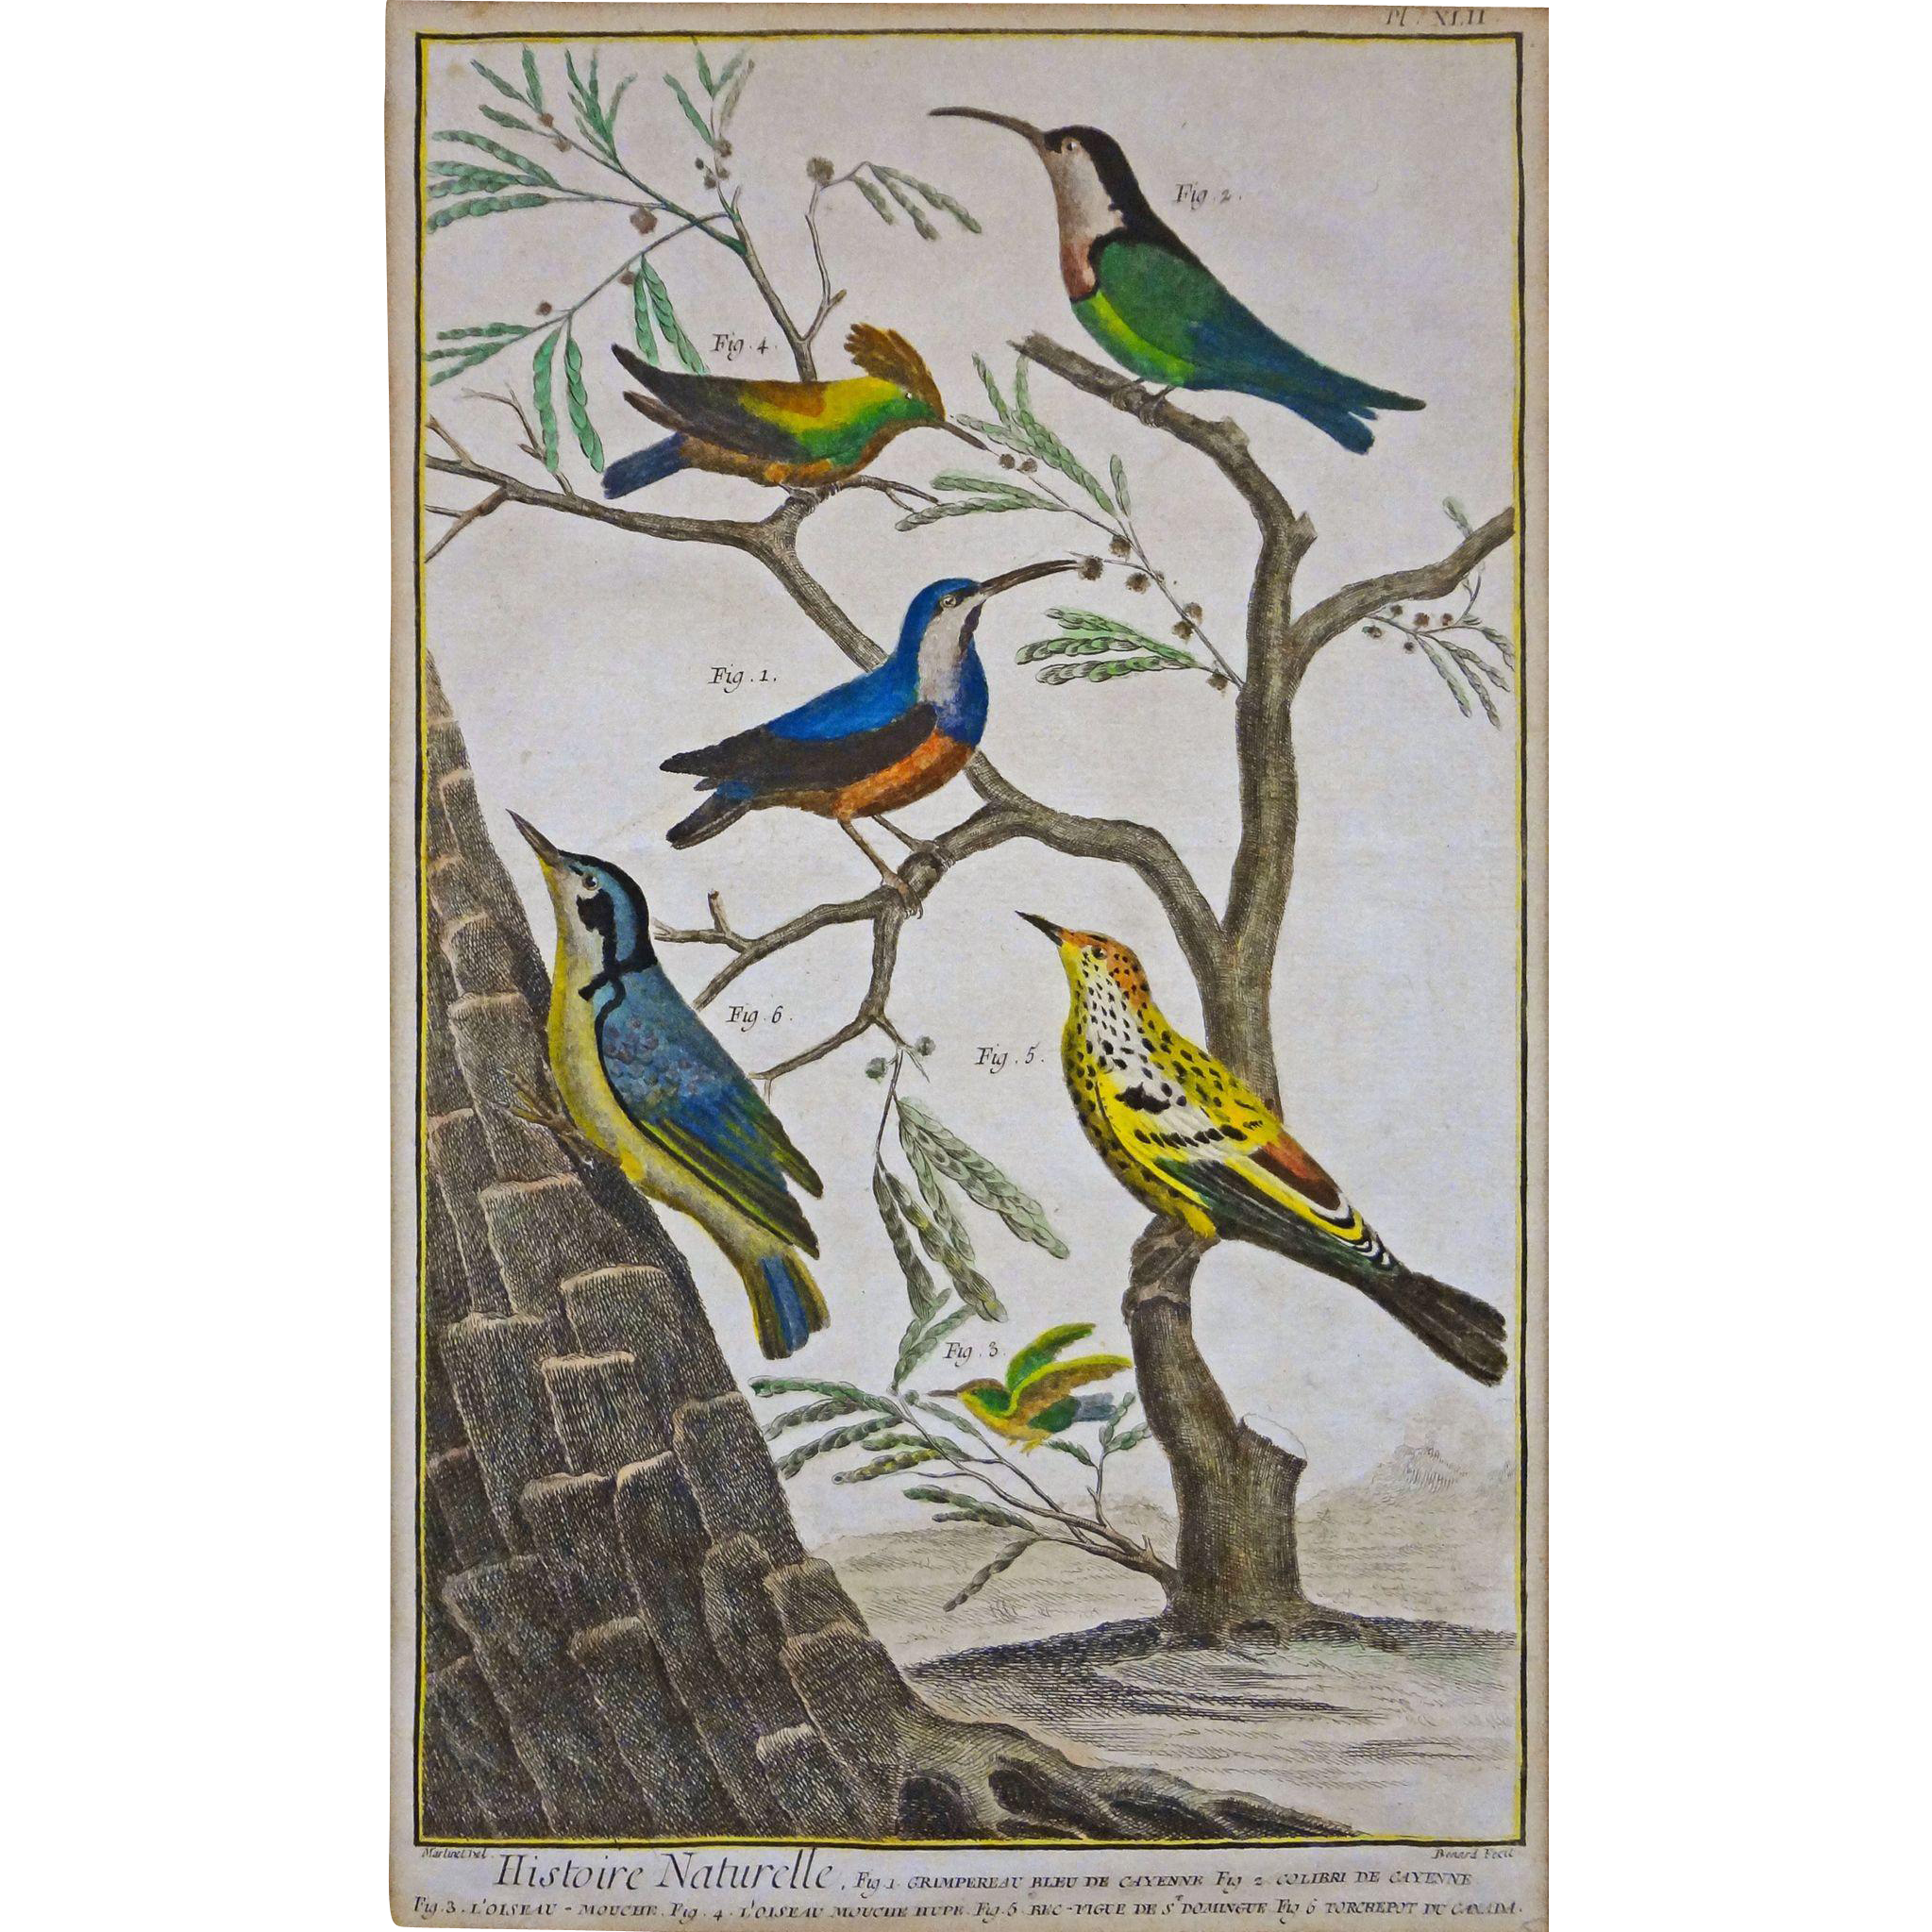 "Antique Engraving of Birds Plate XLII from ""Histoire Naturelle"" by Benard after Martinet - c. 1768, France"